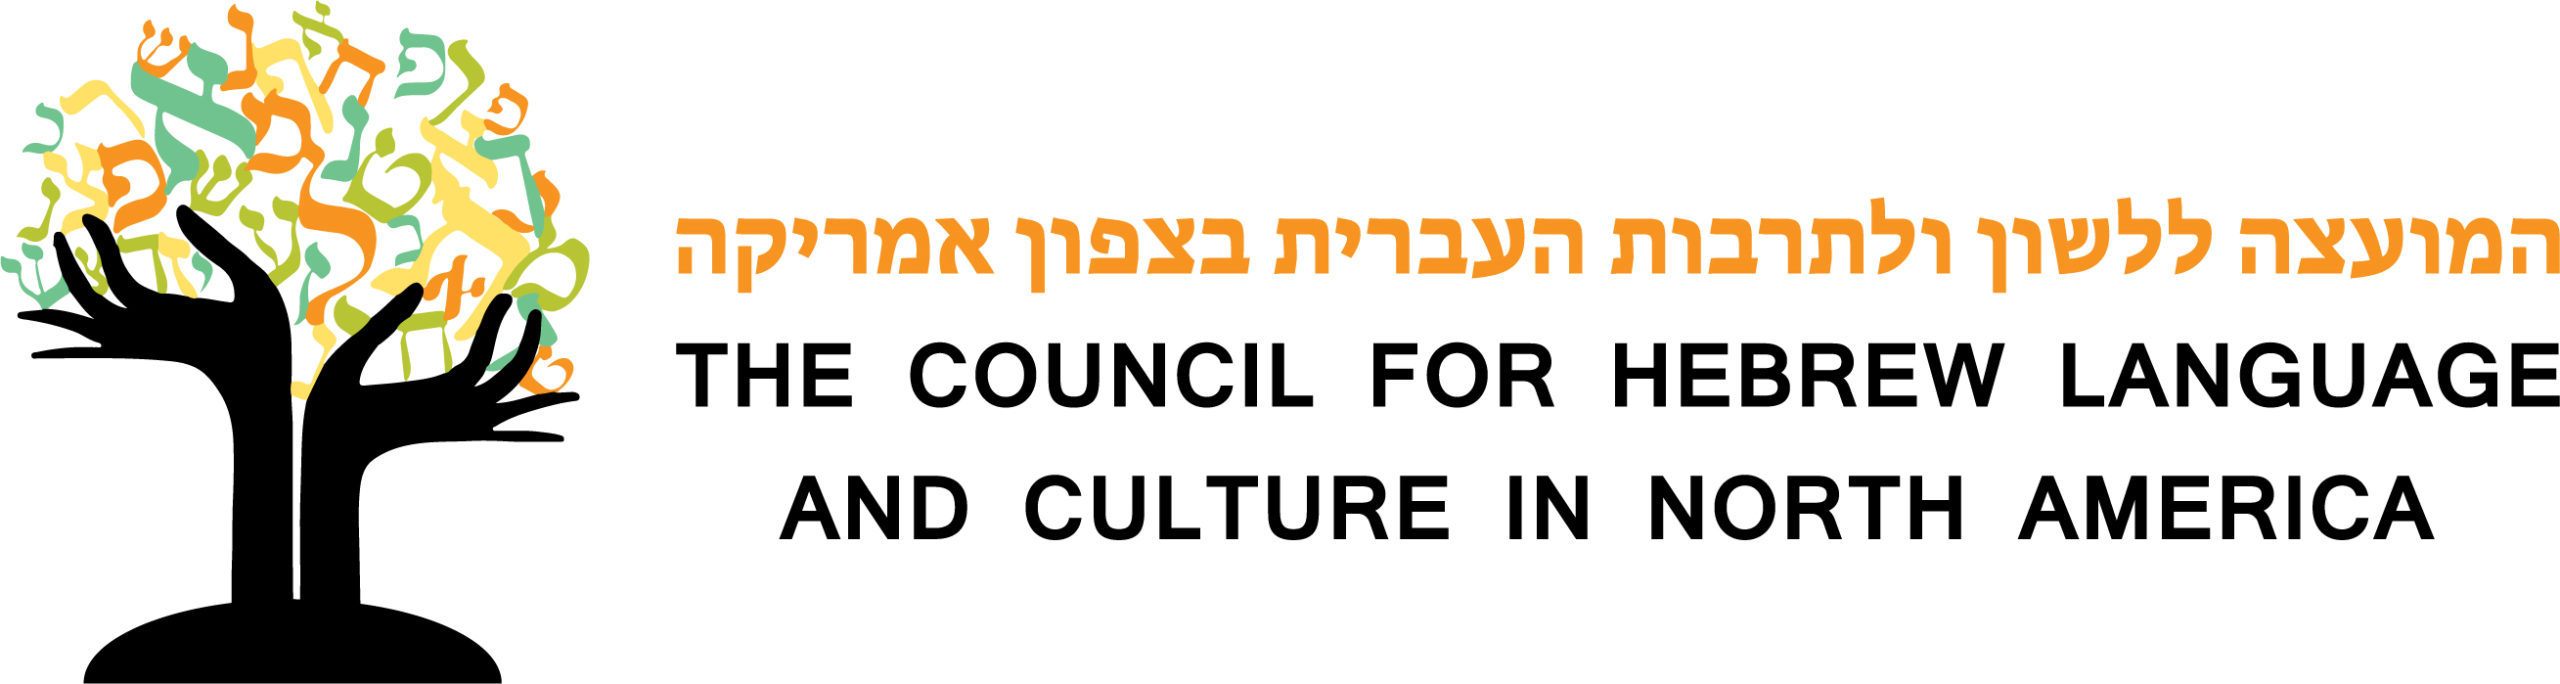 Council for Hebrew Language